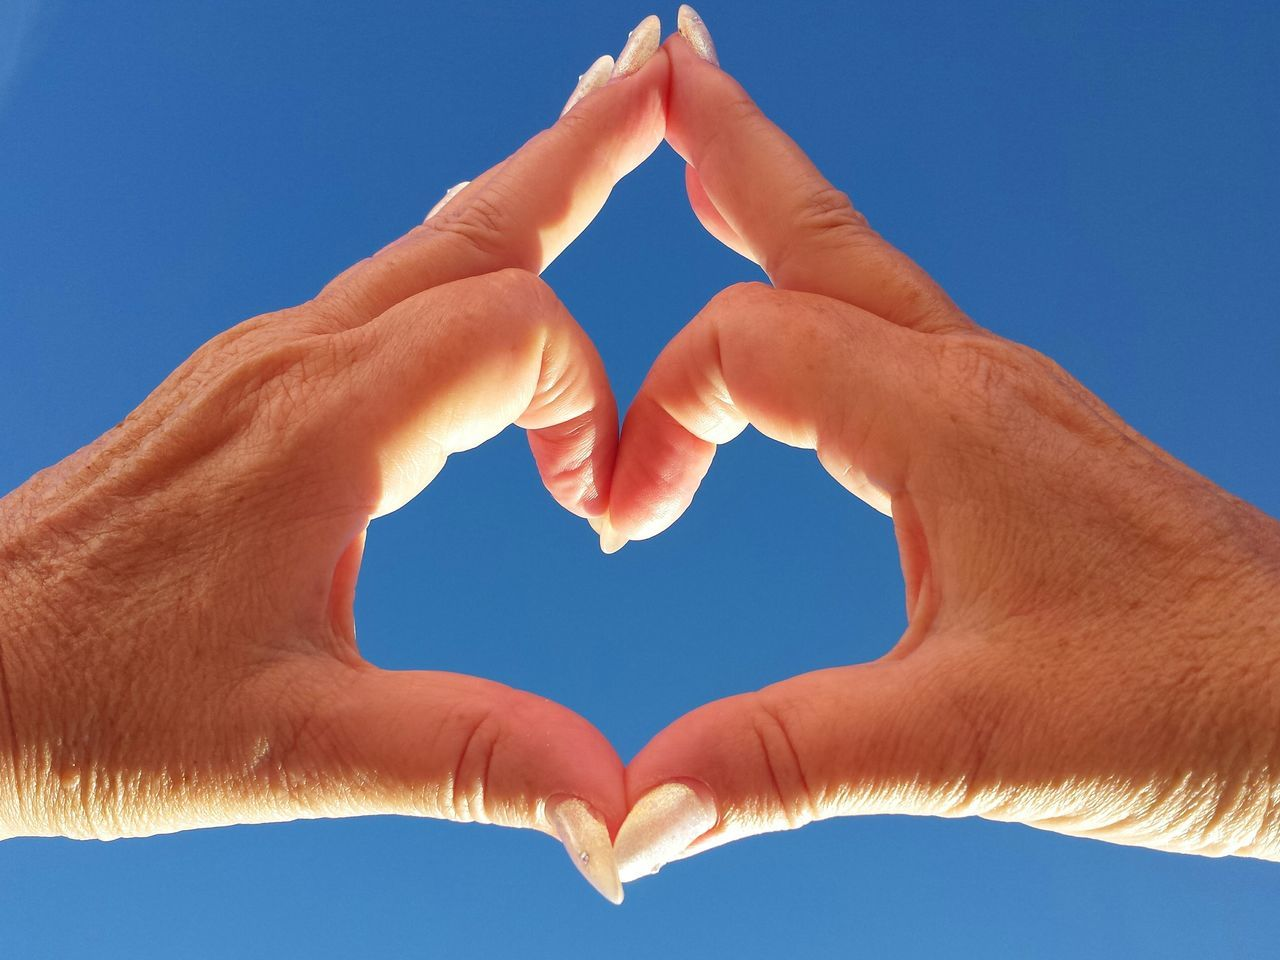 Cropped Image Of Hands Forming Heart Shape Against Clear Sky